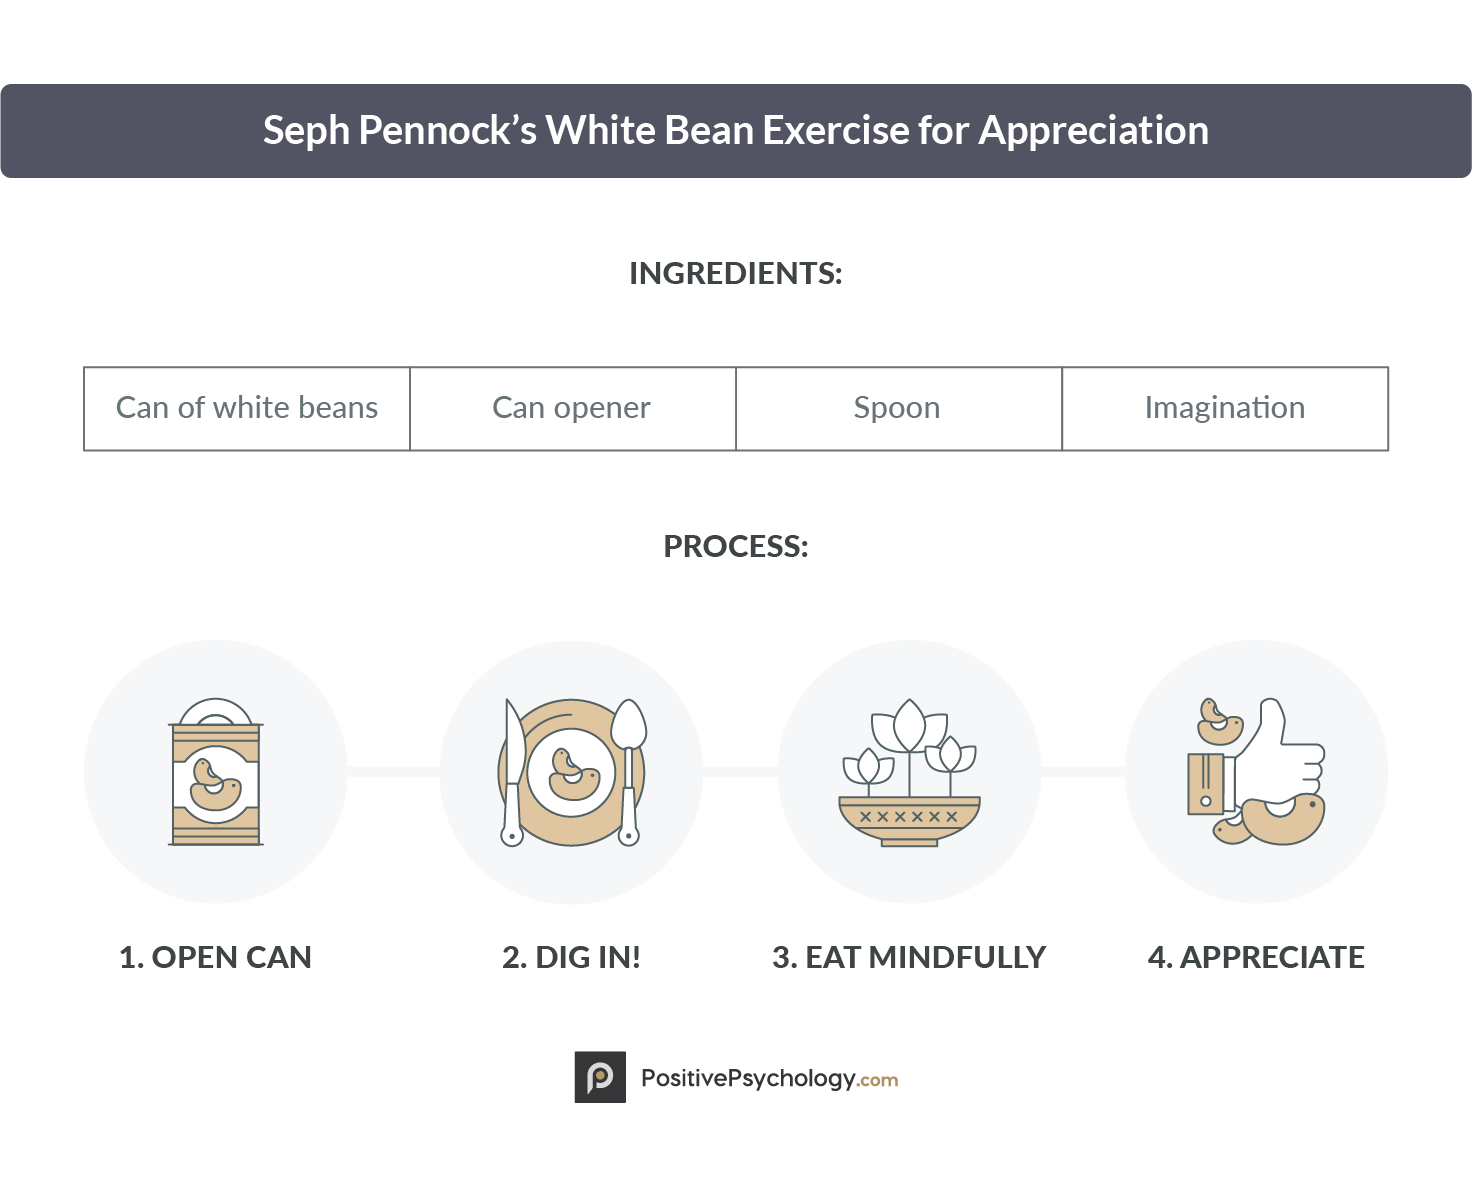 Seph Pennock's White Bean Exercise for Appreciation